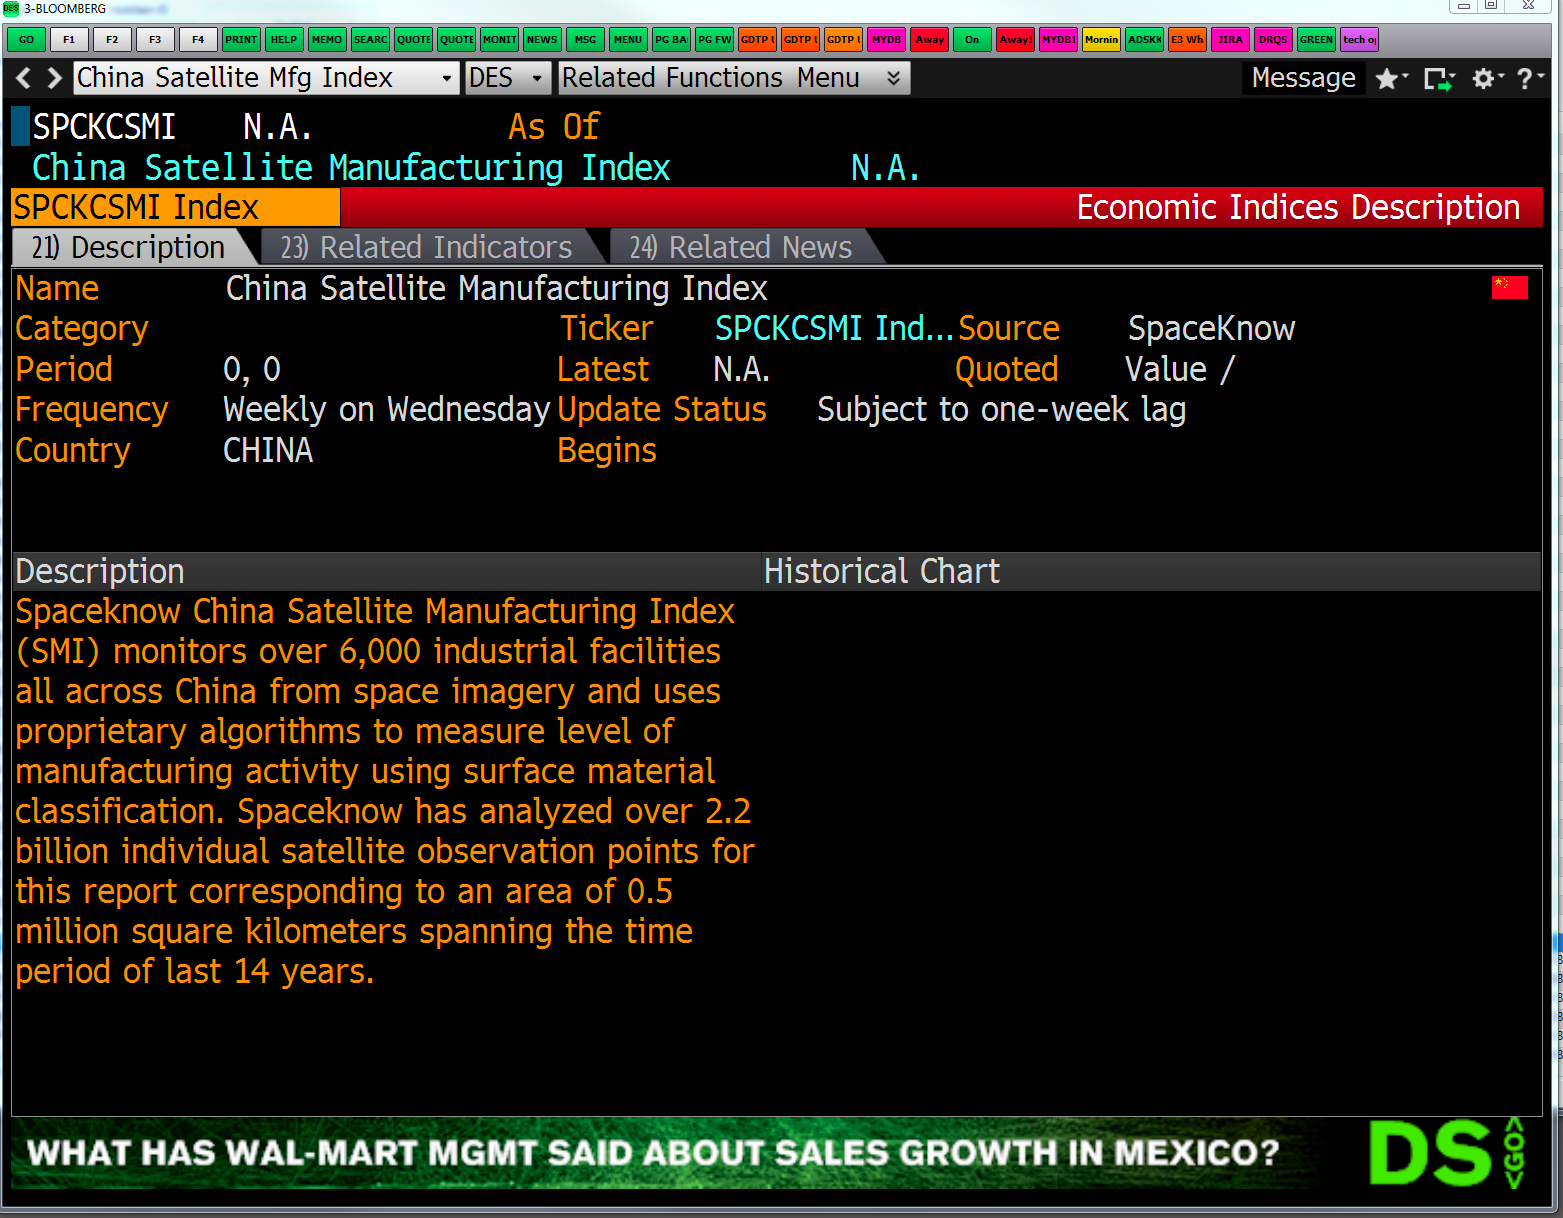 A historic first: Spaceknow's Satellite Manufacturing Index (SMI) on Bloomberg Terminals. Imagery ©Bloomberg 2016